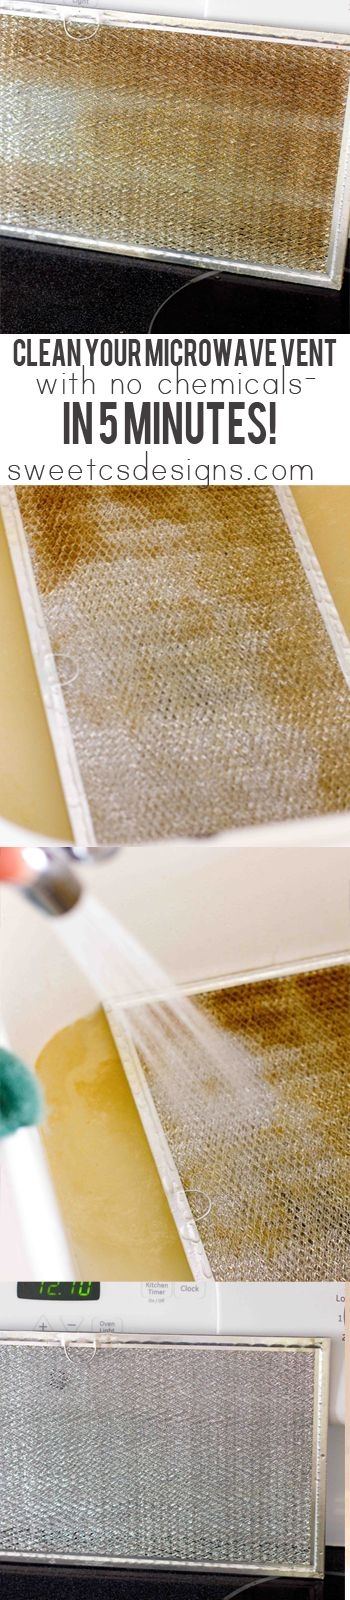 How to clean your under microwave-over stove vent grate without ANY chemicals